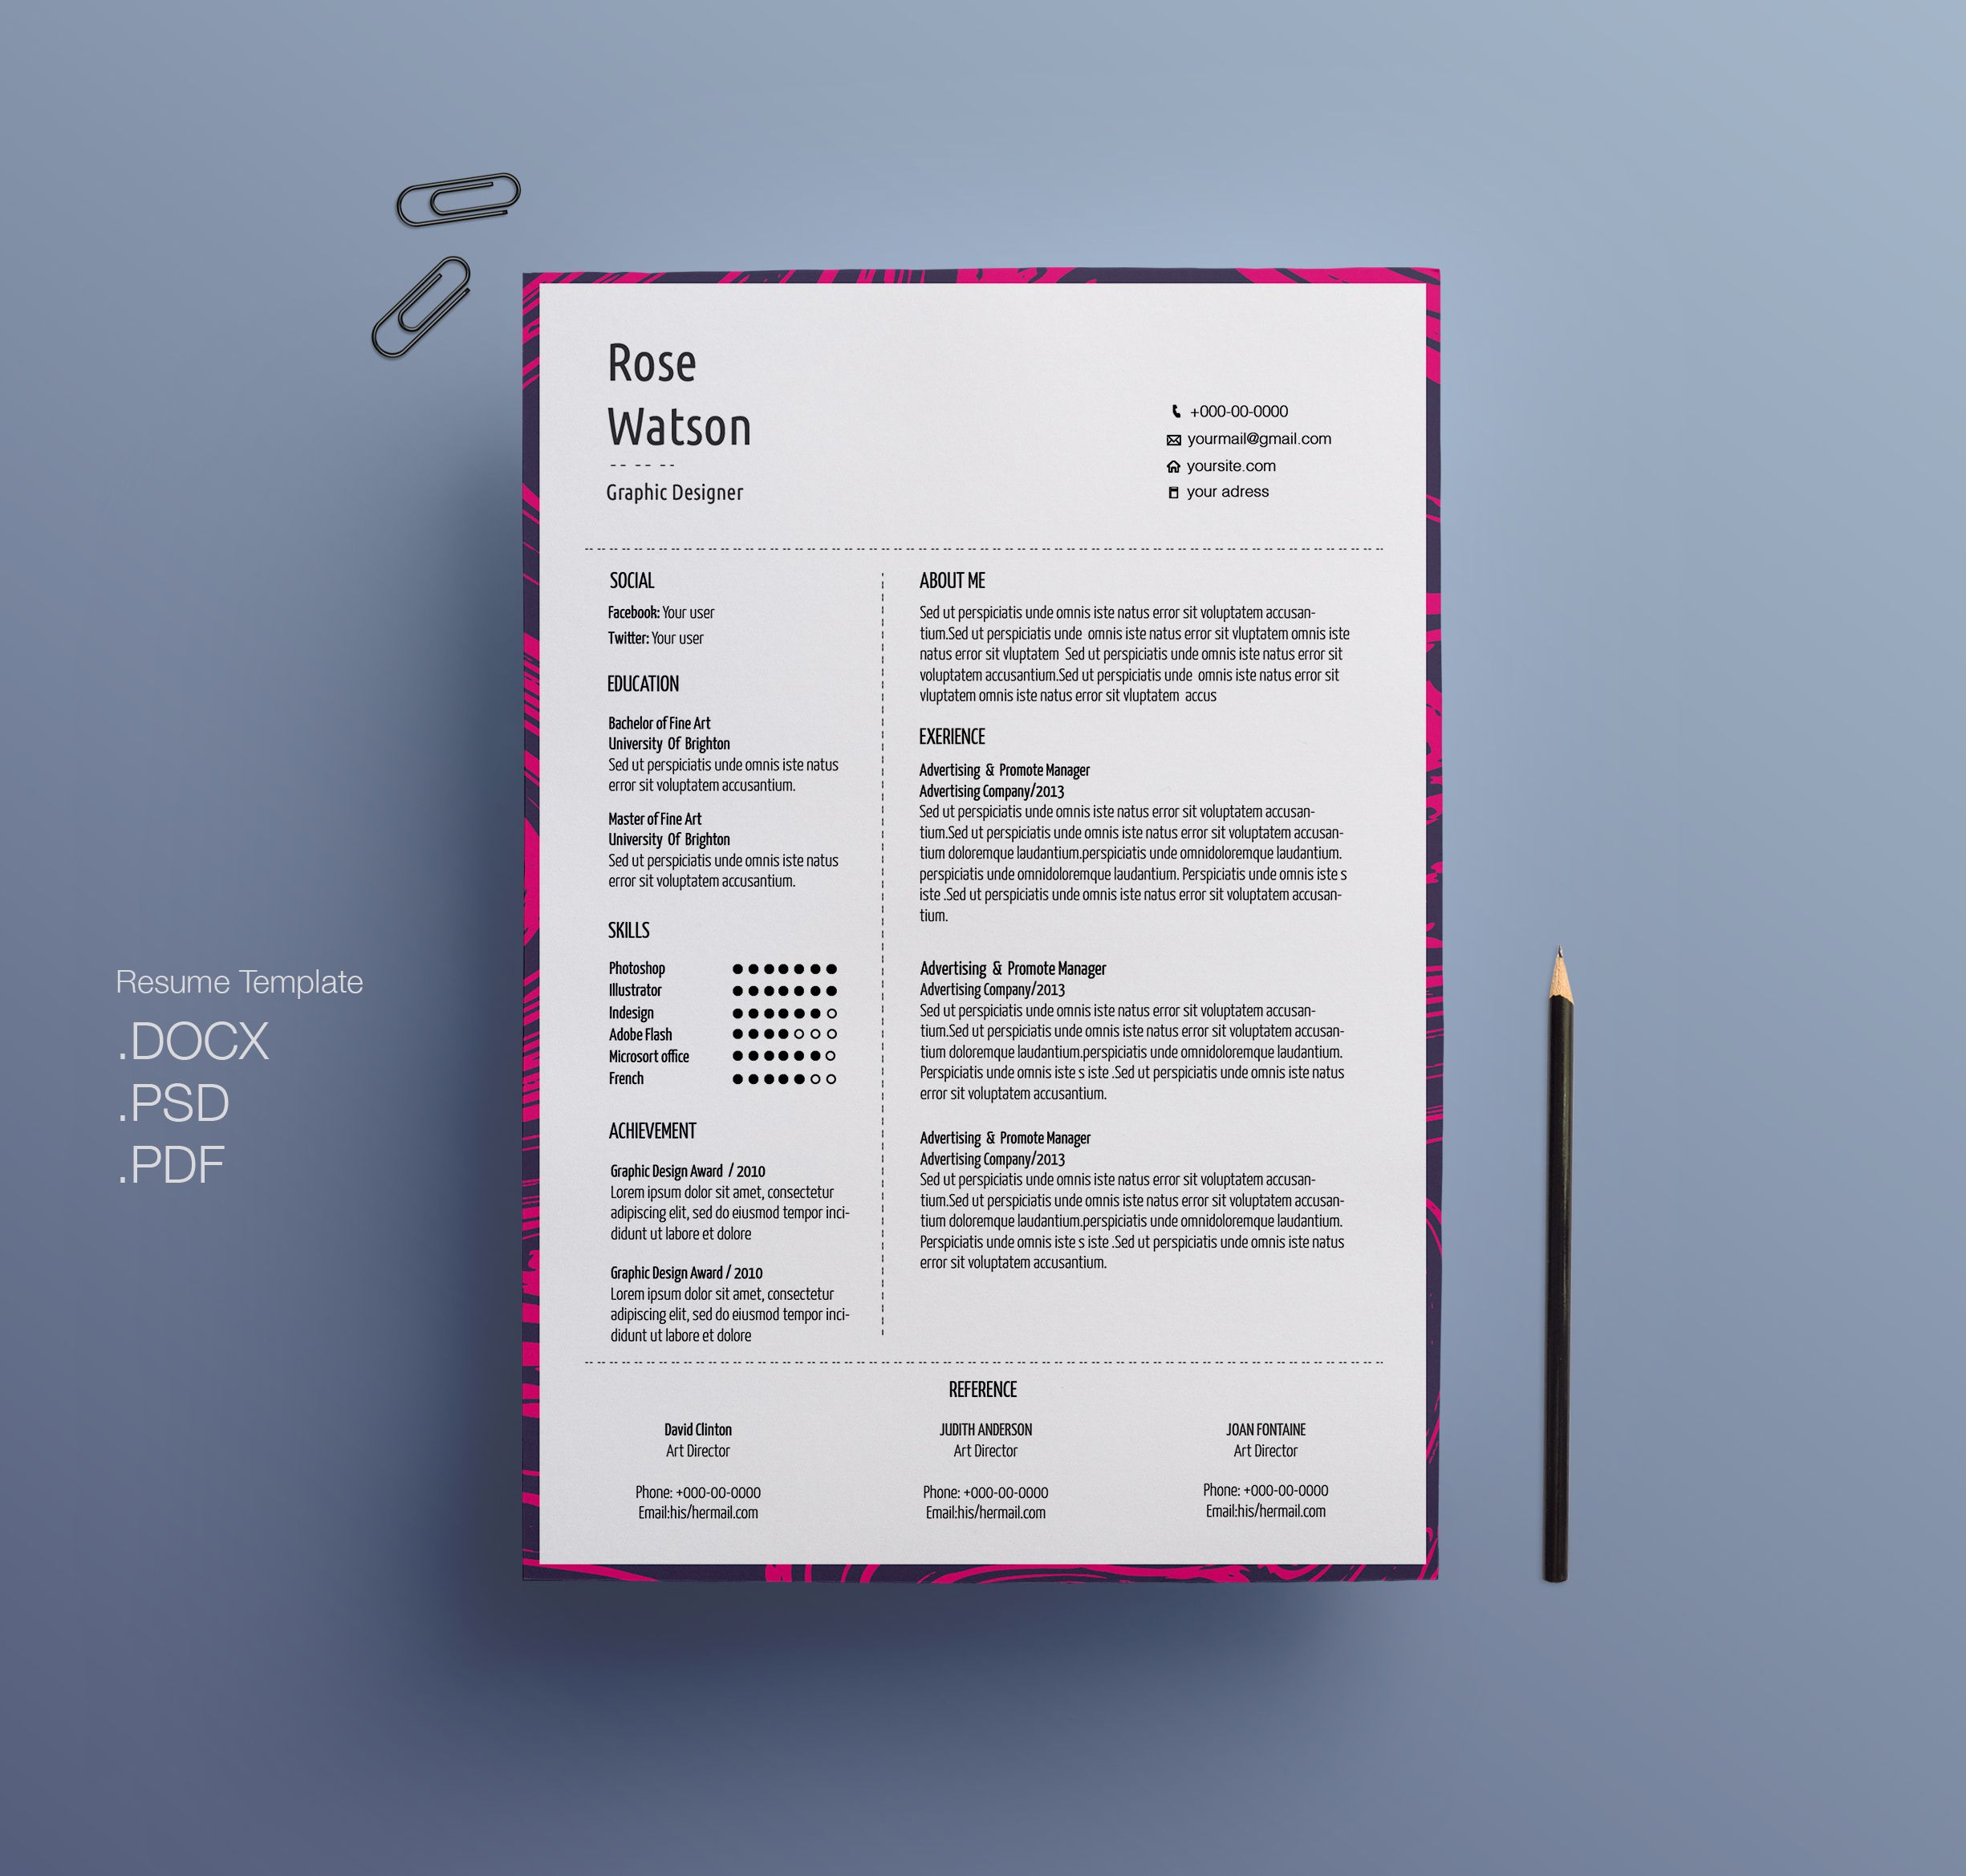 Resume Behance Resume Template check out my behance project simple resume template https